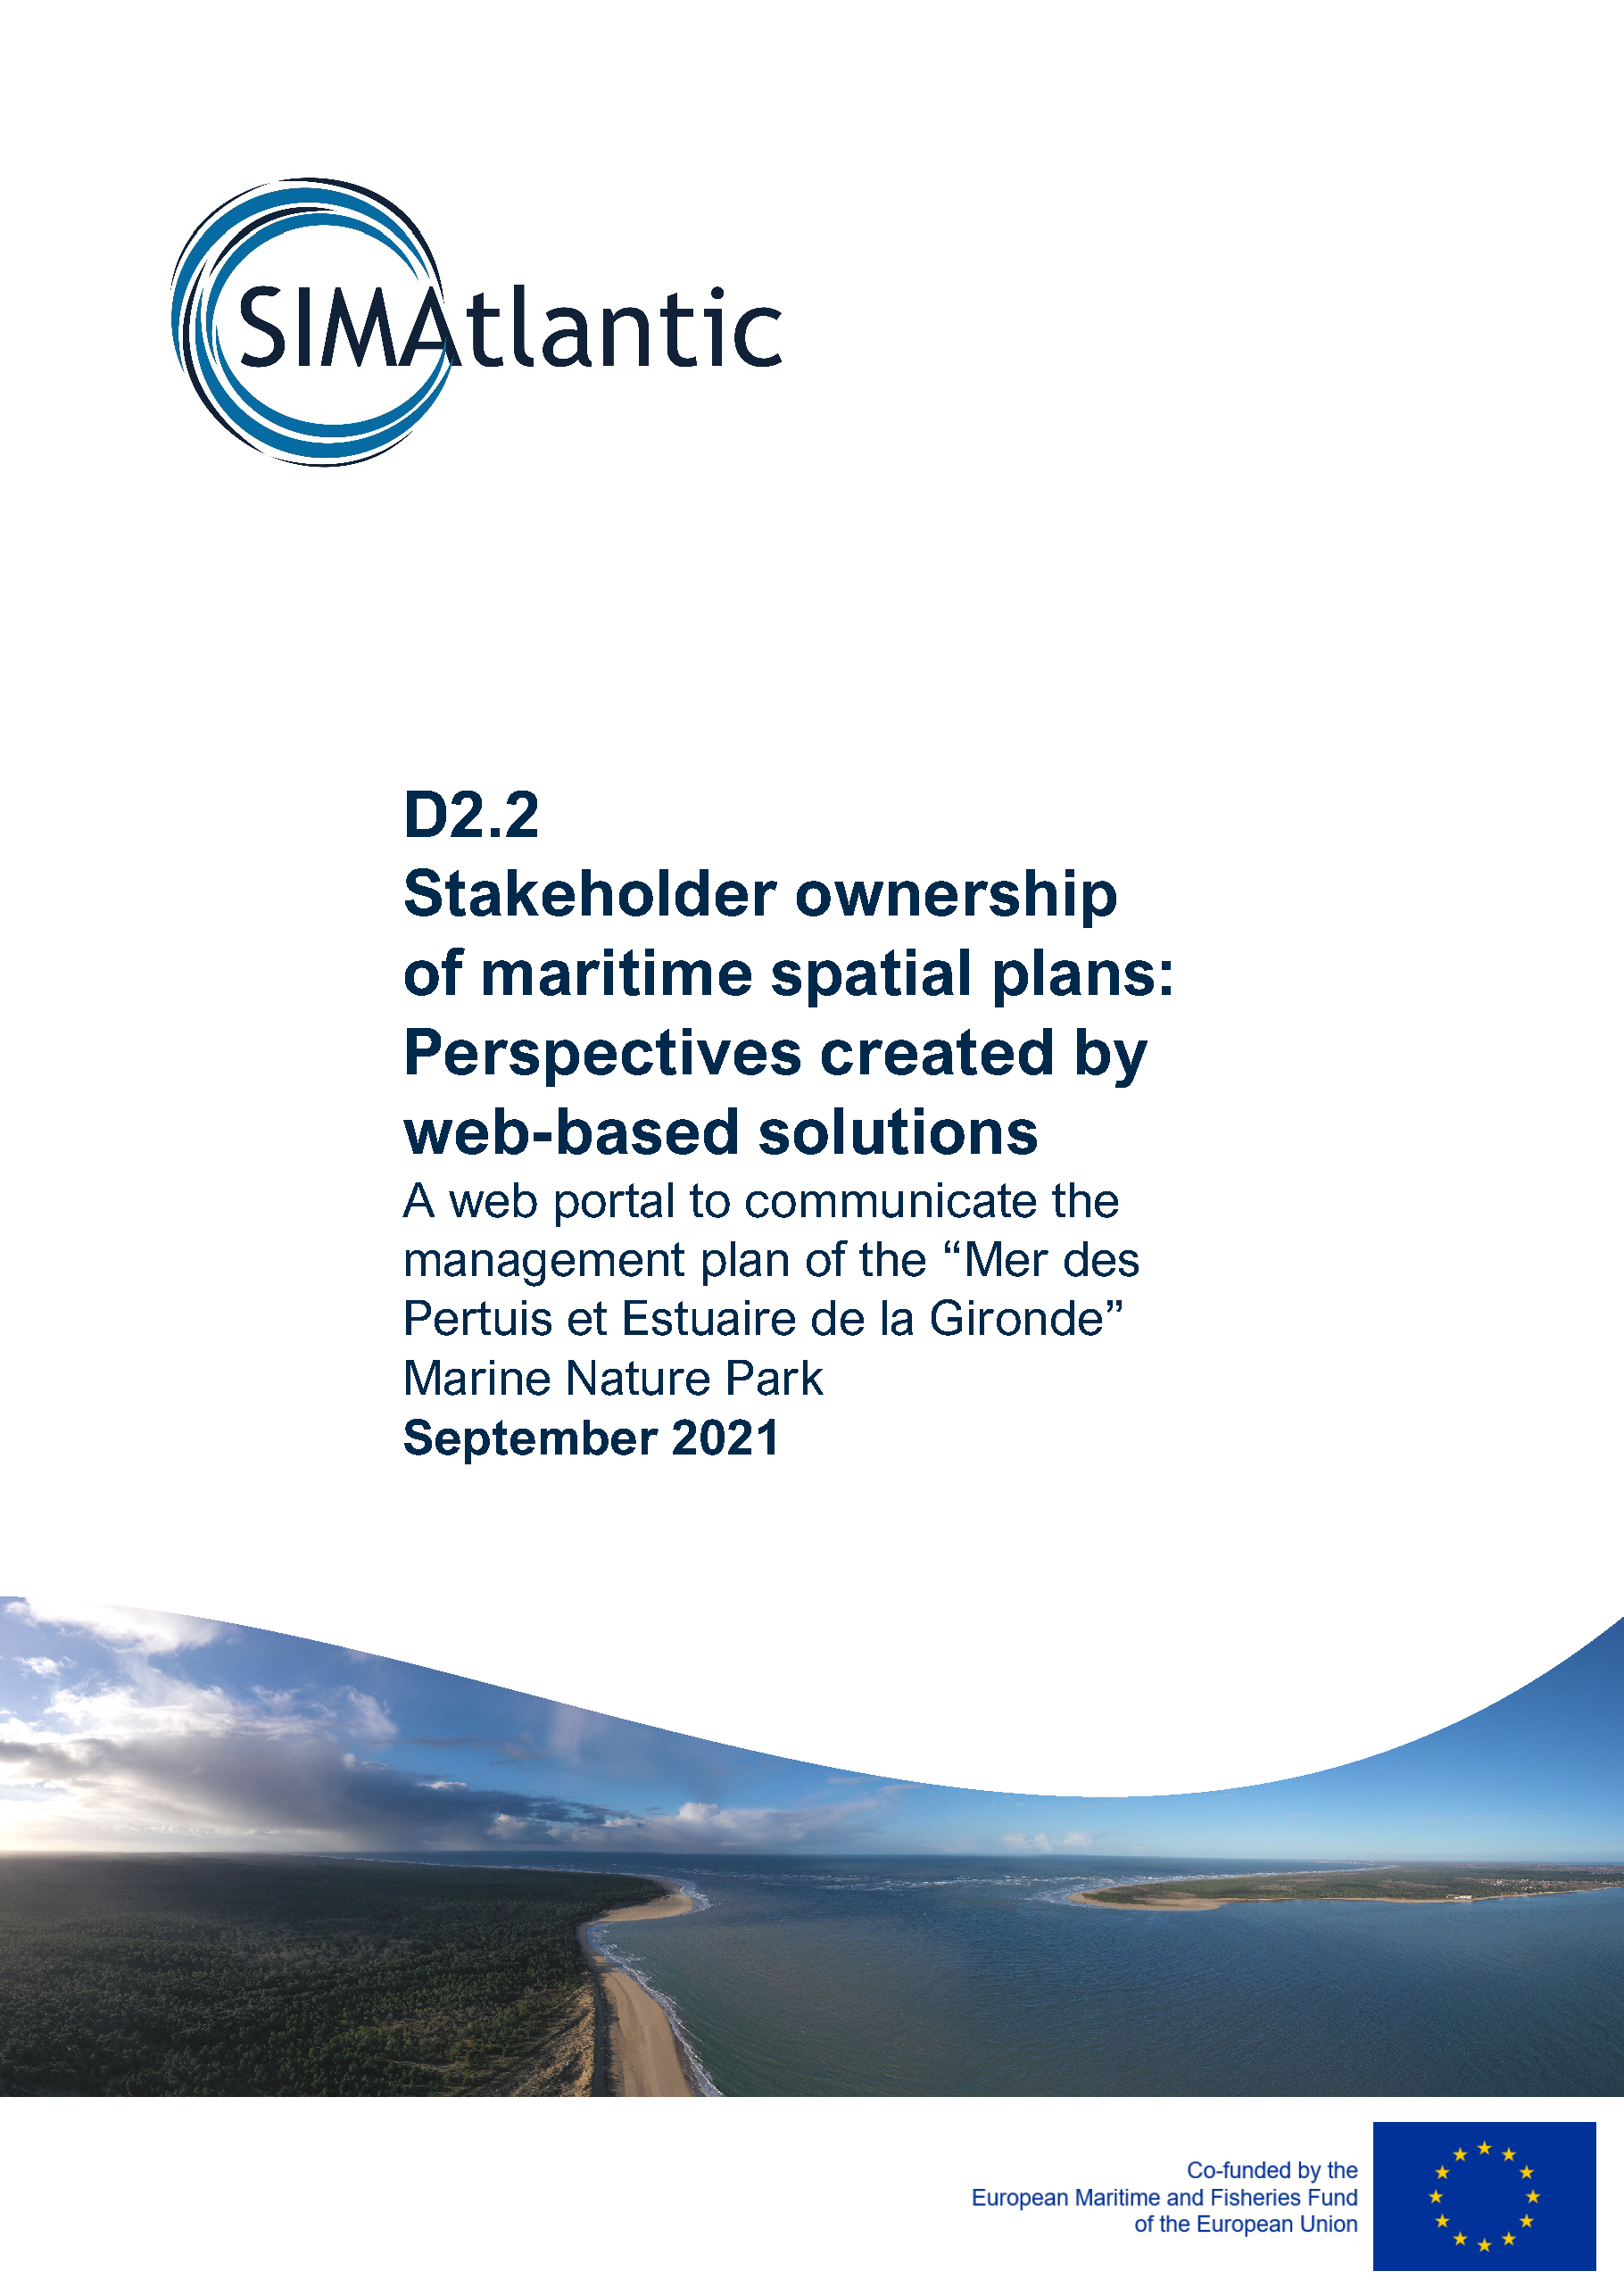 D2.2 Stakeholder ownership of maritime spatial plans